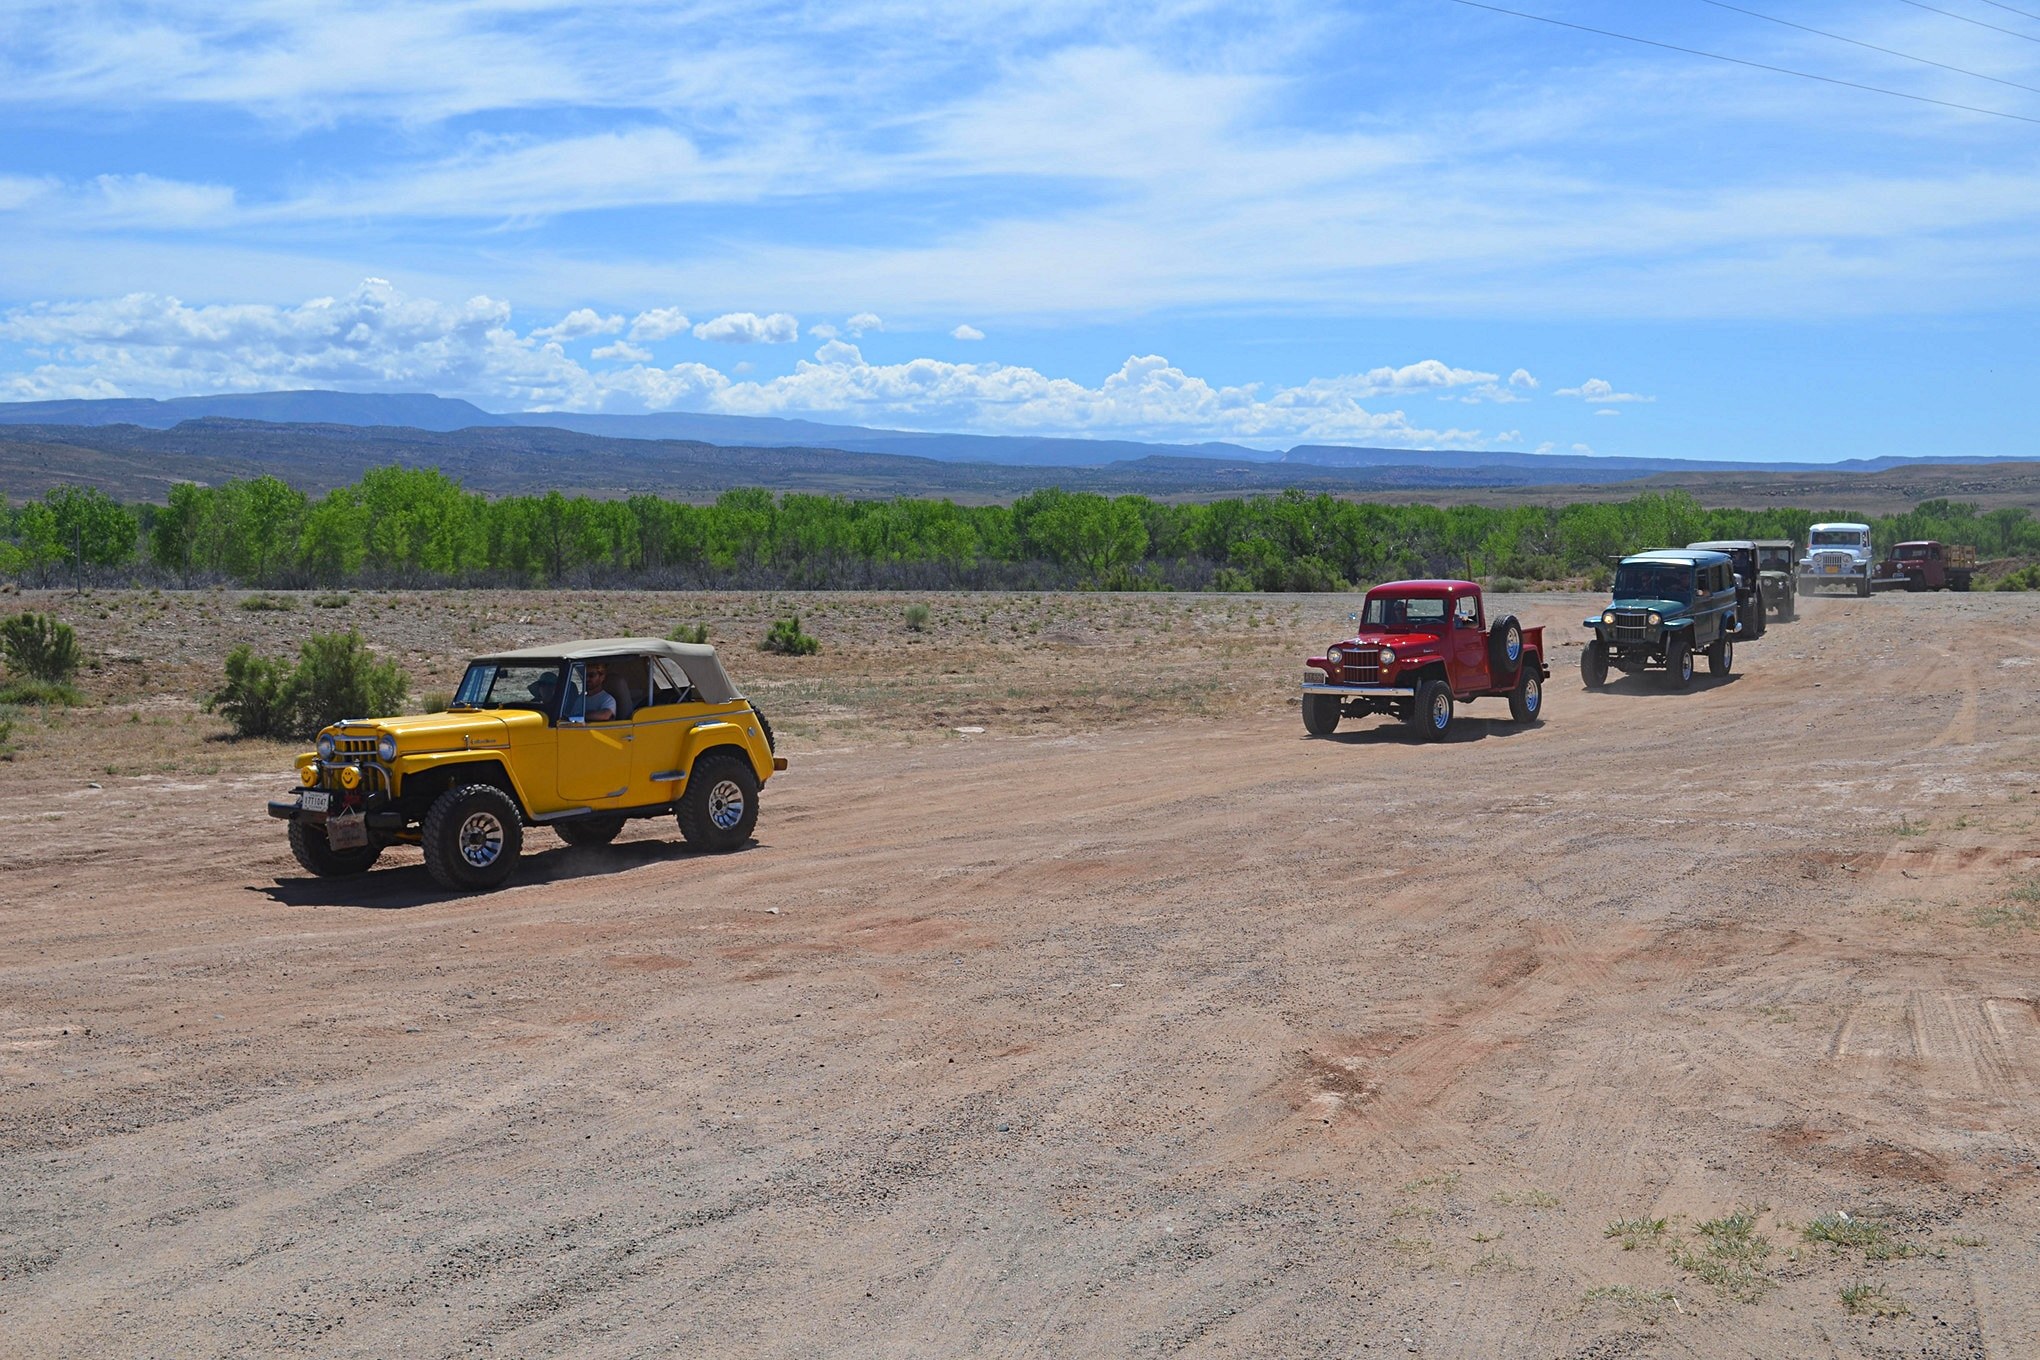 After a few miles of pavement, we arrived at the trailhead for the Saturday trail run. A variety of old Willys made the trek to Utah for the event, some stock and some moderately to heavily modified.